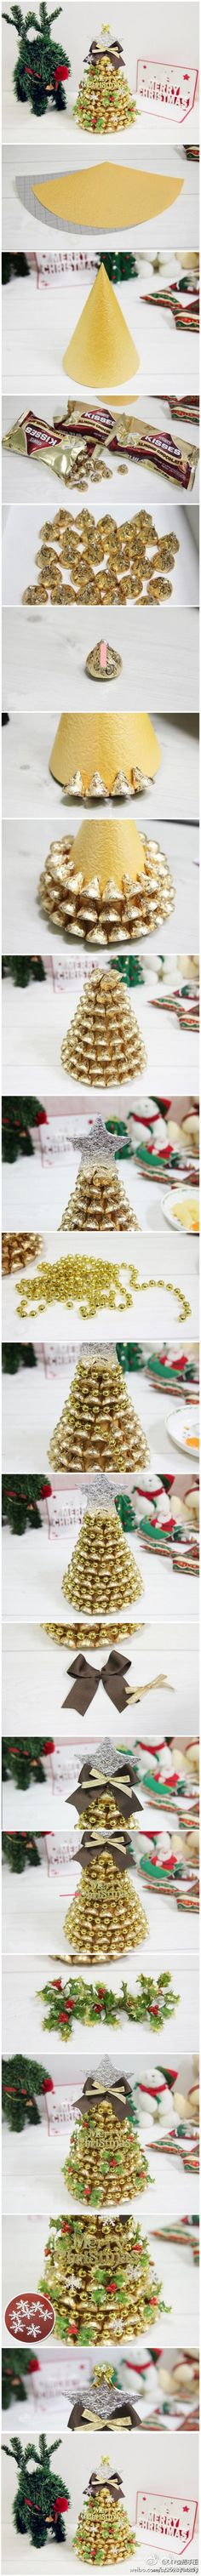 DIY Christmas Tree craft - Would be pretty with different colors too! Diy Christmas Tree, Christmas Projects, Winter Christmas, All Things Christmas, Christmas Holidays, Christmas Decorations, Tree Decorations, Xmas Trees, Christmas Snacks